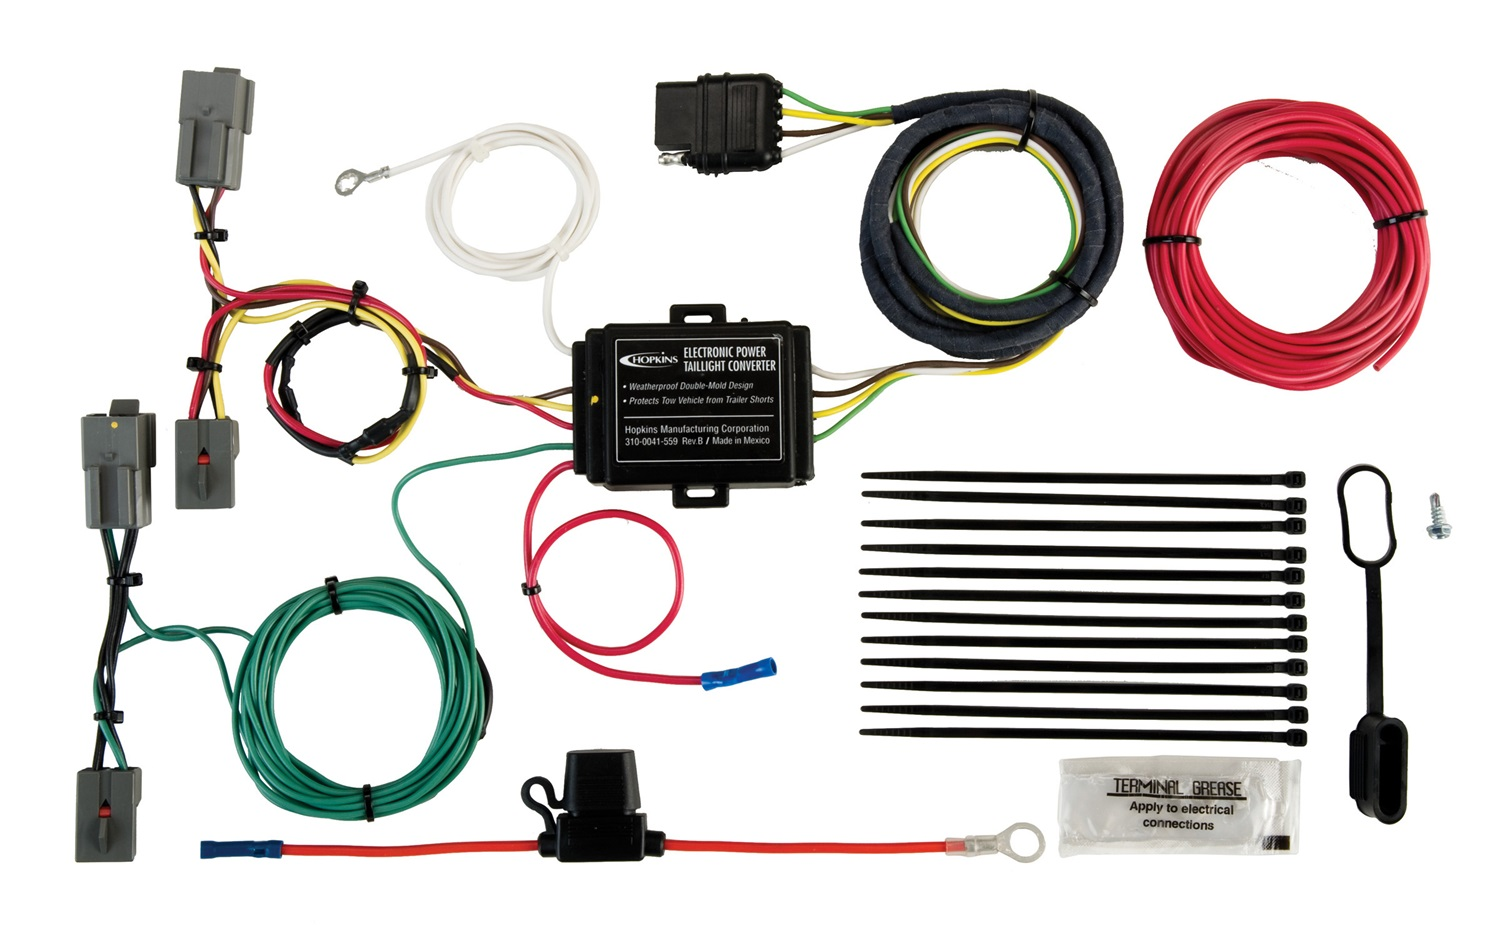 hight resolution of hopkins towing solution 11140504 plug in simple vehicle to trailer wiring harness incl short proof power converter walmart com